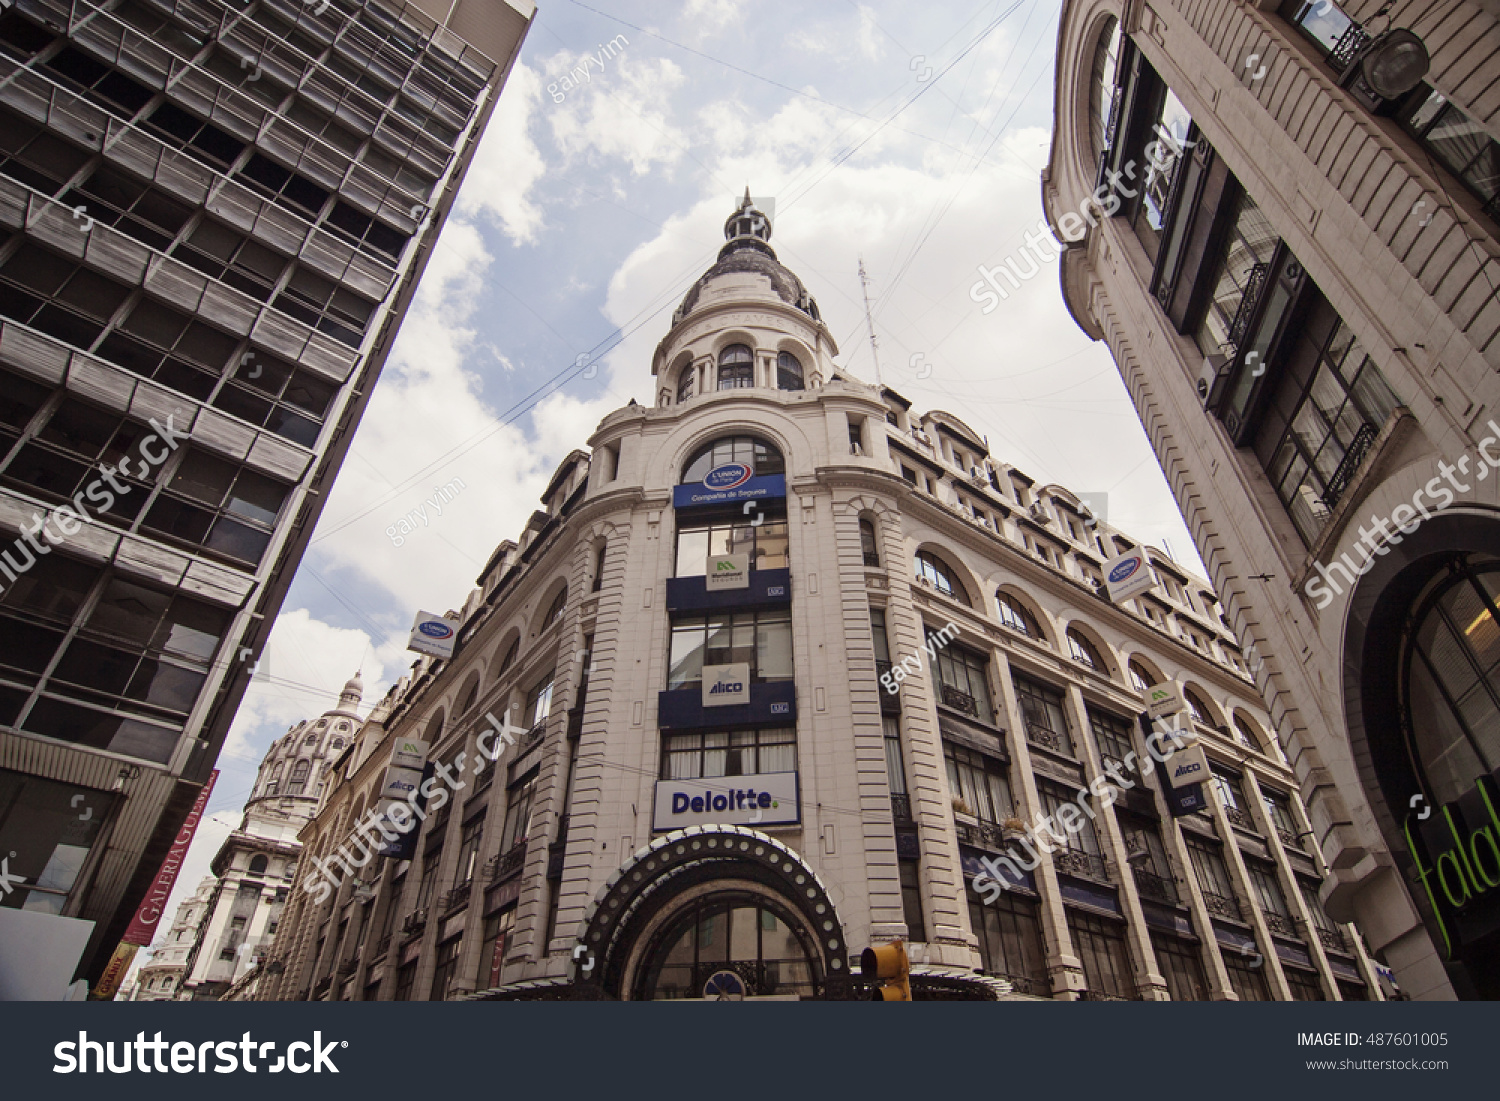 Buenos Aires Argentina February 27 2009 Stock Photo (Edit Now) 487601005